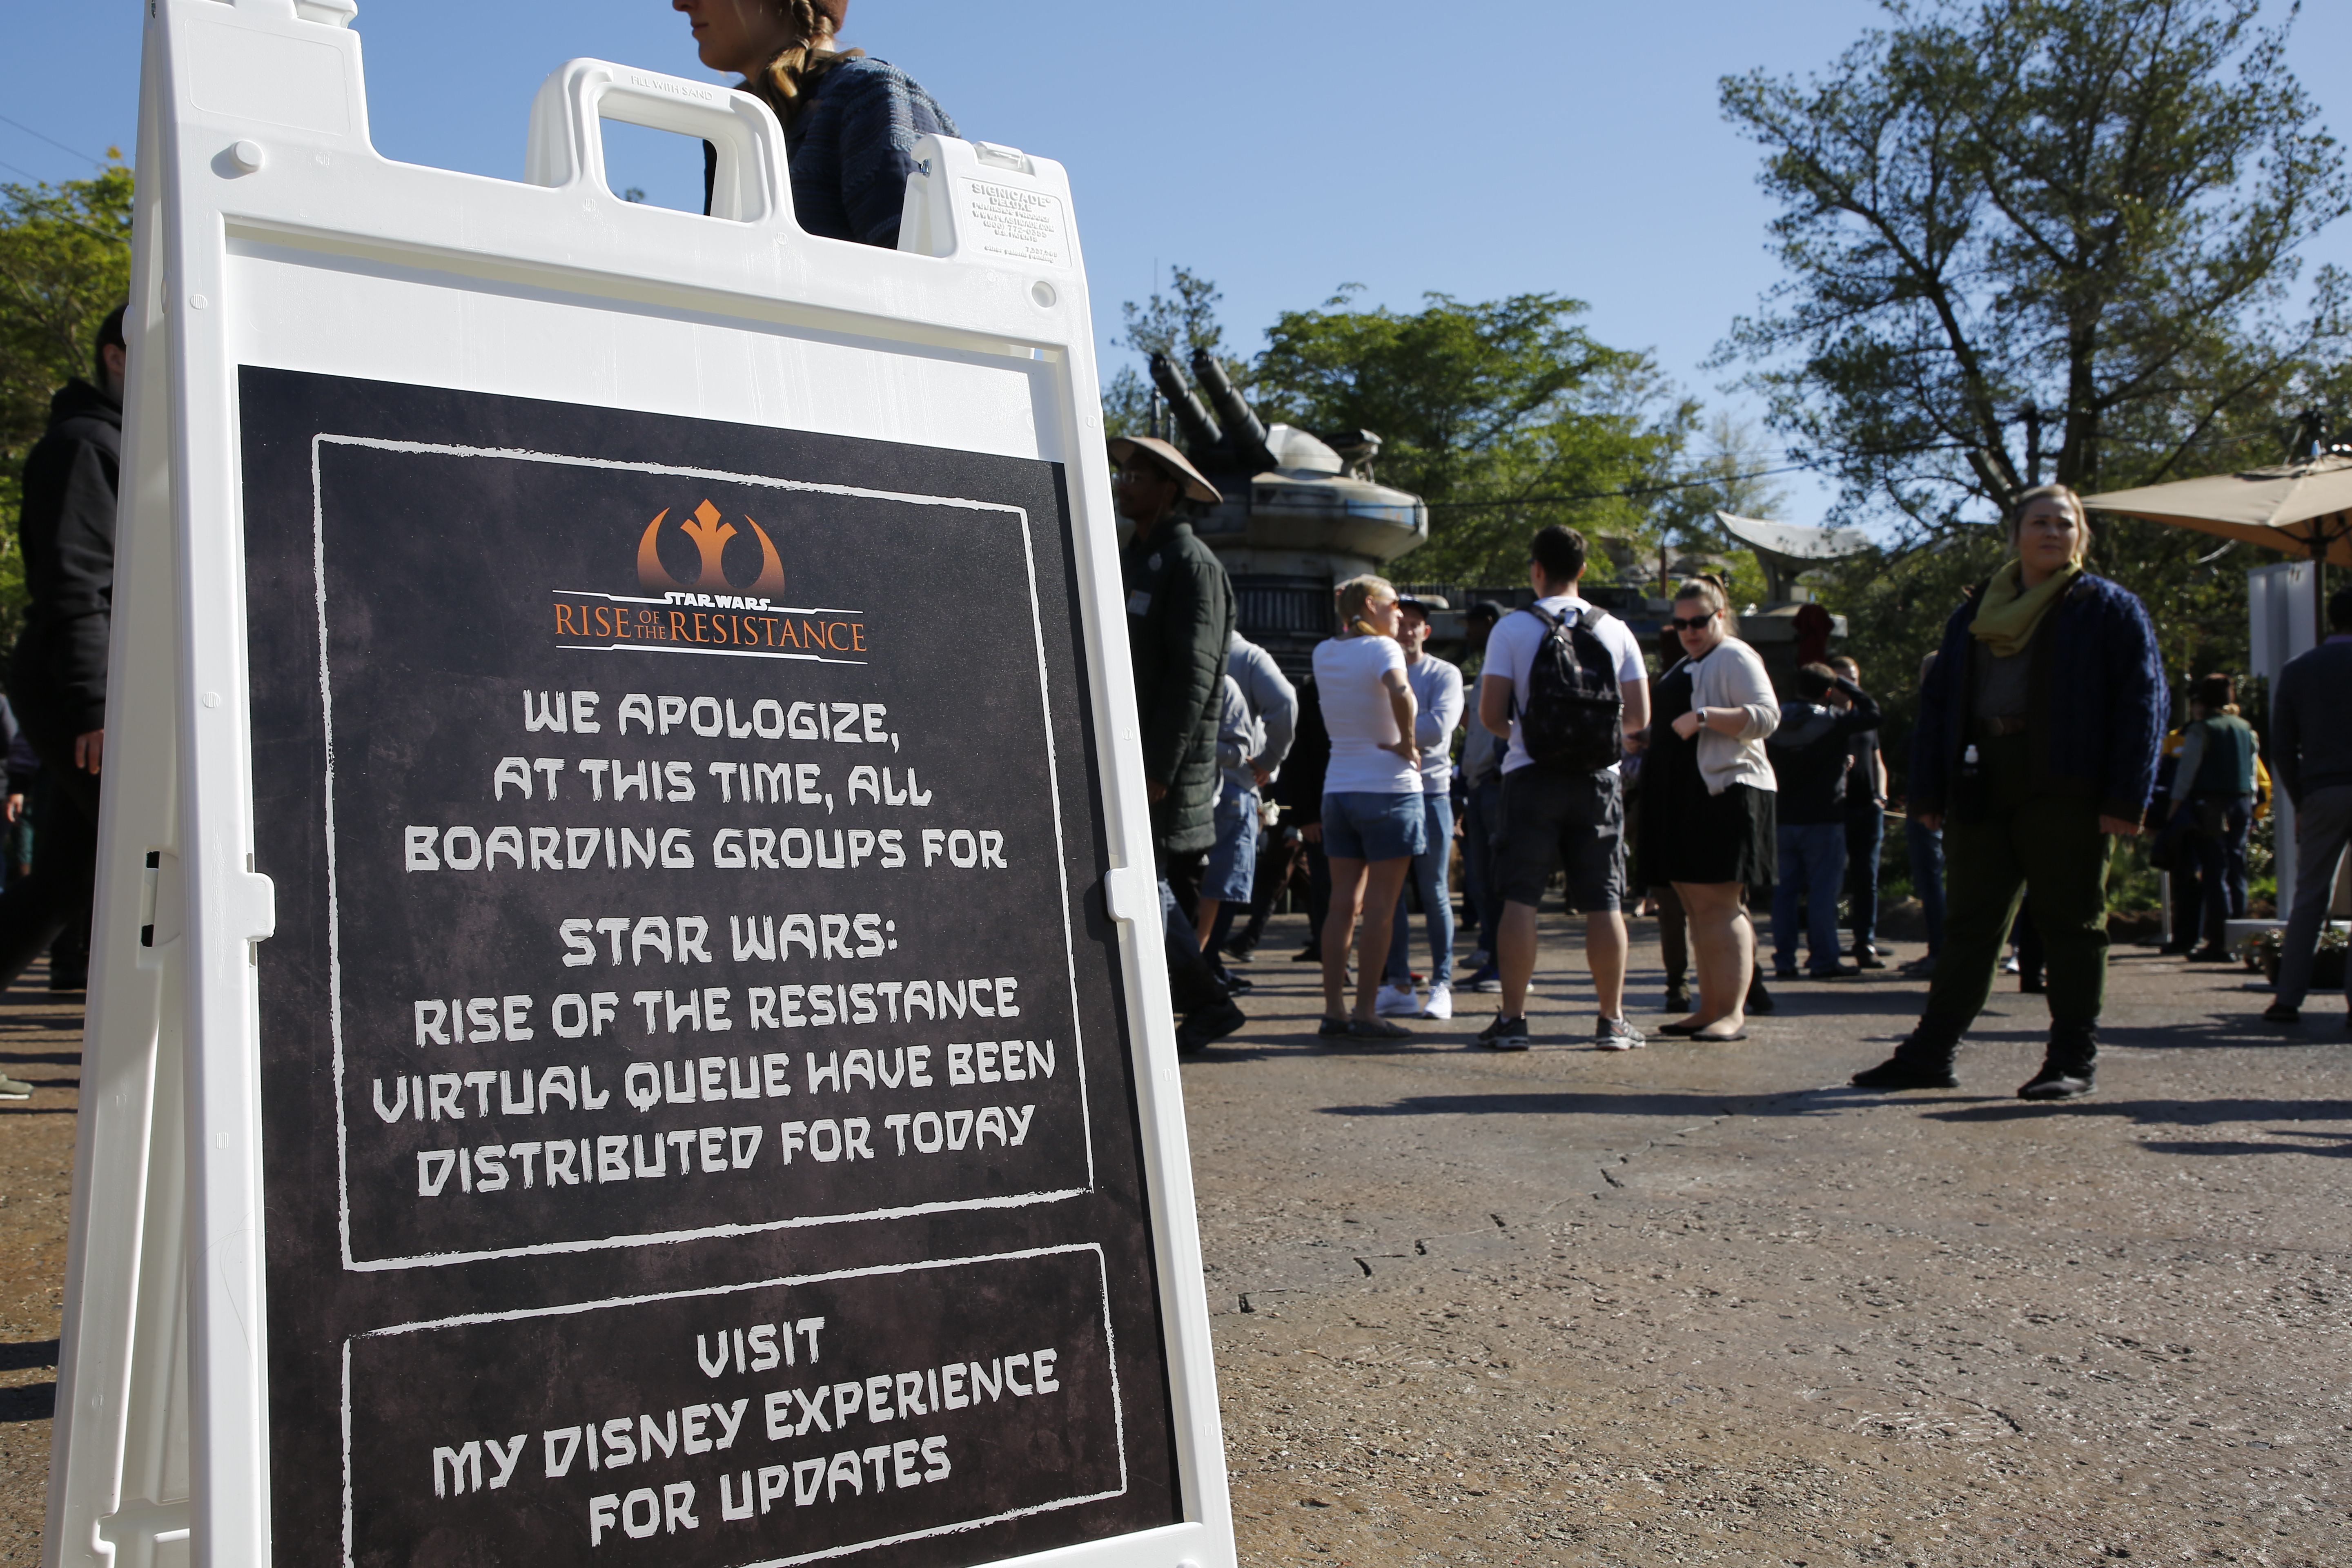 The Rise Of The Resistance Line Closed Before The Park Was Supposed To Be Open